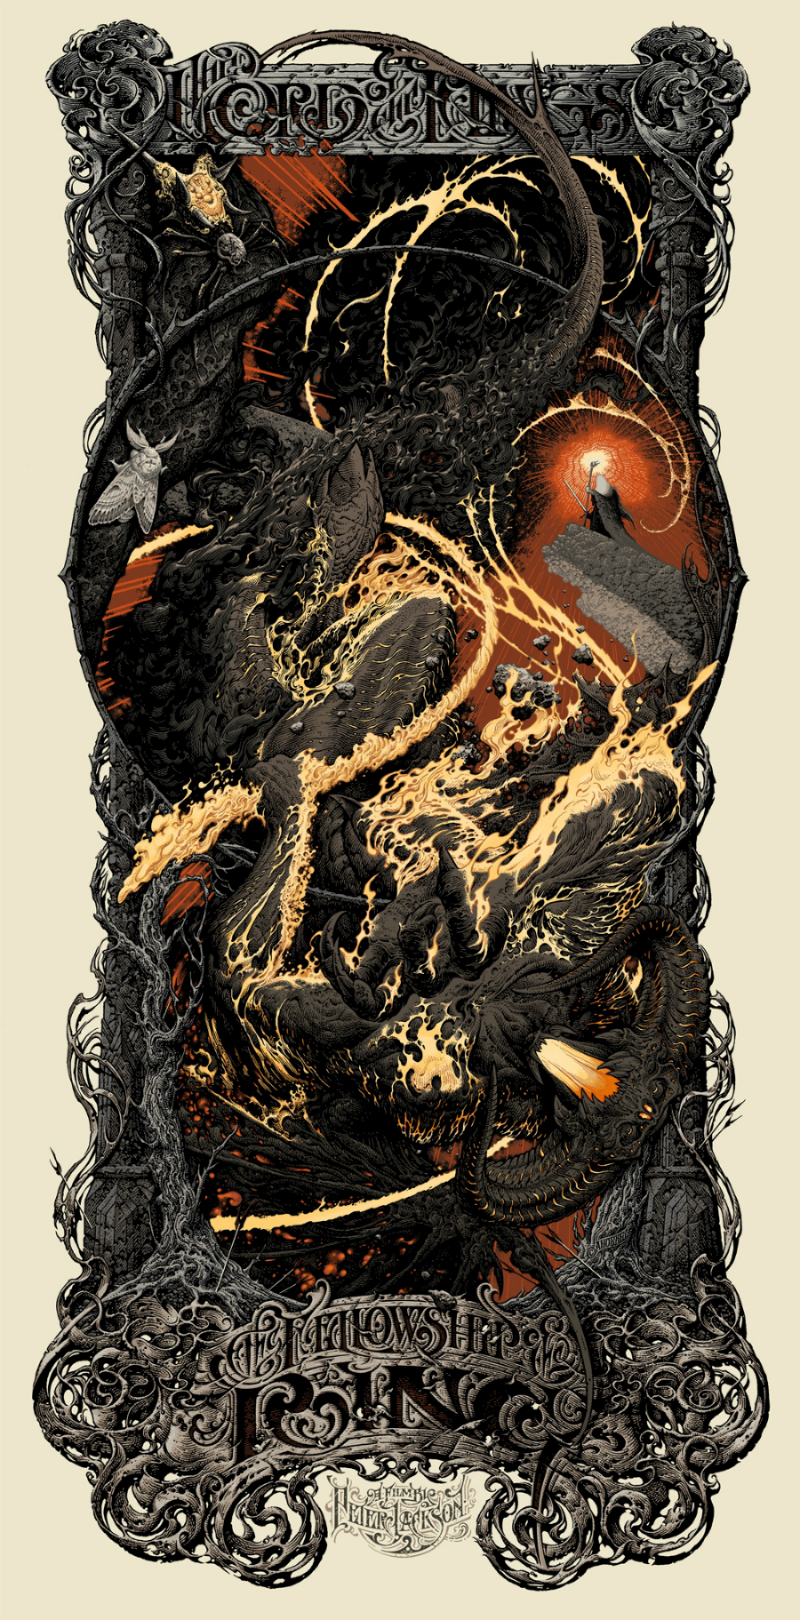 I got insanely lucky on this mondo drop. I was lucky enough to score the variant and the reg! This is a bit of a stretch since I haven't seen this print in person yet, but it makes my list. Horkey is amazing. Need to get his Pan's Labyrinth print this year.